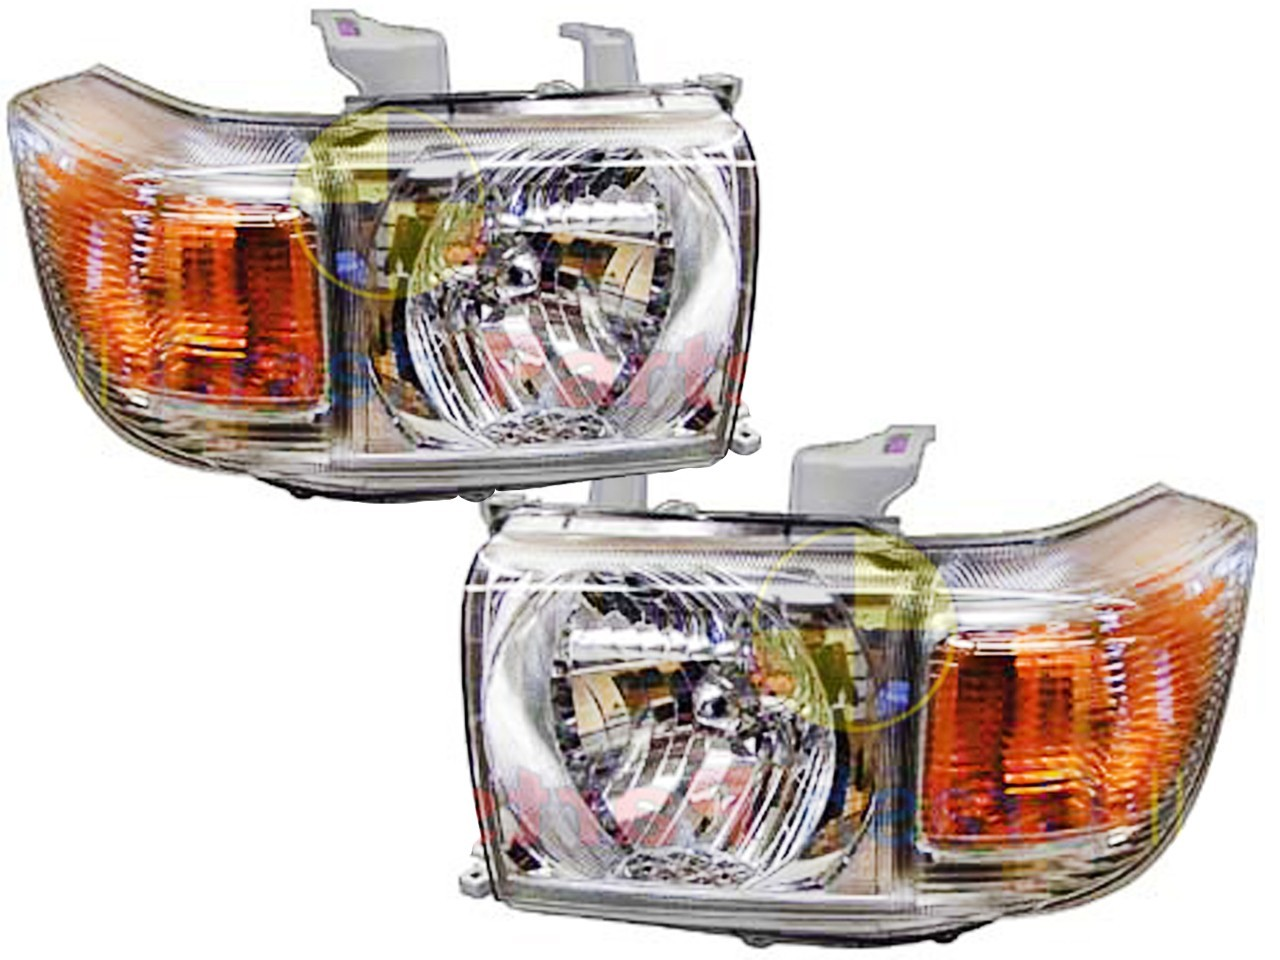 Headlights 07 14 Toyota Landcruiser 76 78 79 70 Series Pair Ute Wagon Troopy L R Aftermarket